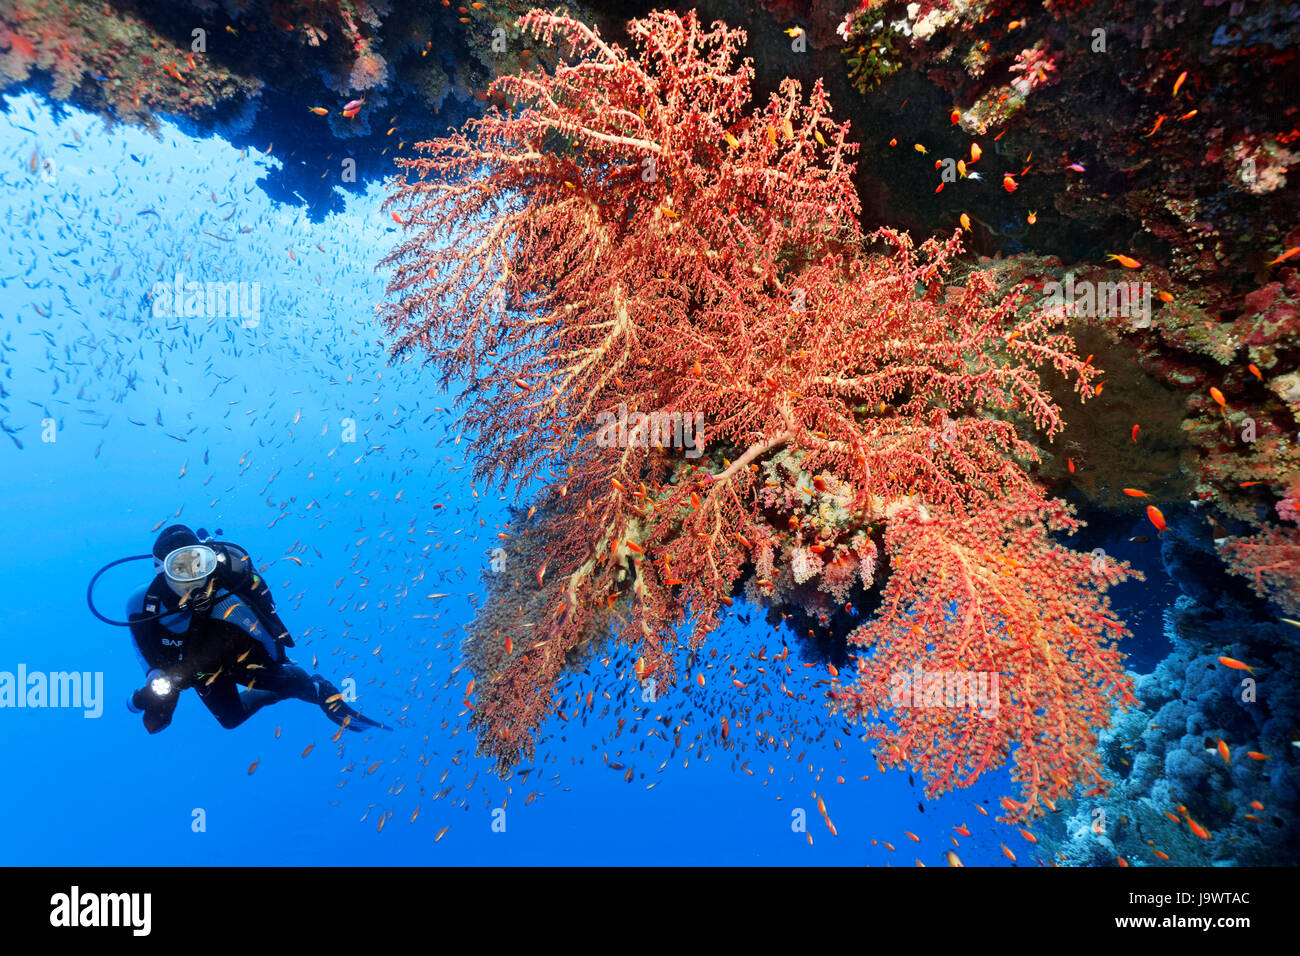 Diver looking at large soft coral fan (Siphonogorgia godeffroyi) Red sea, Egypt - Stock Image